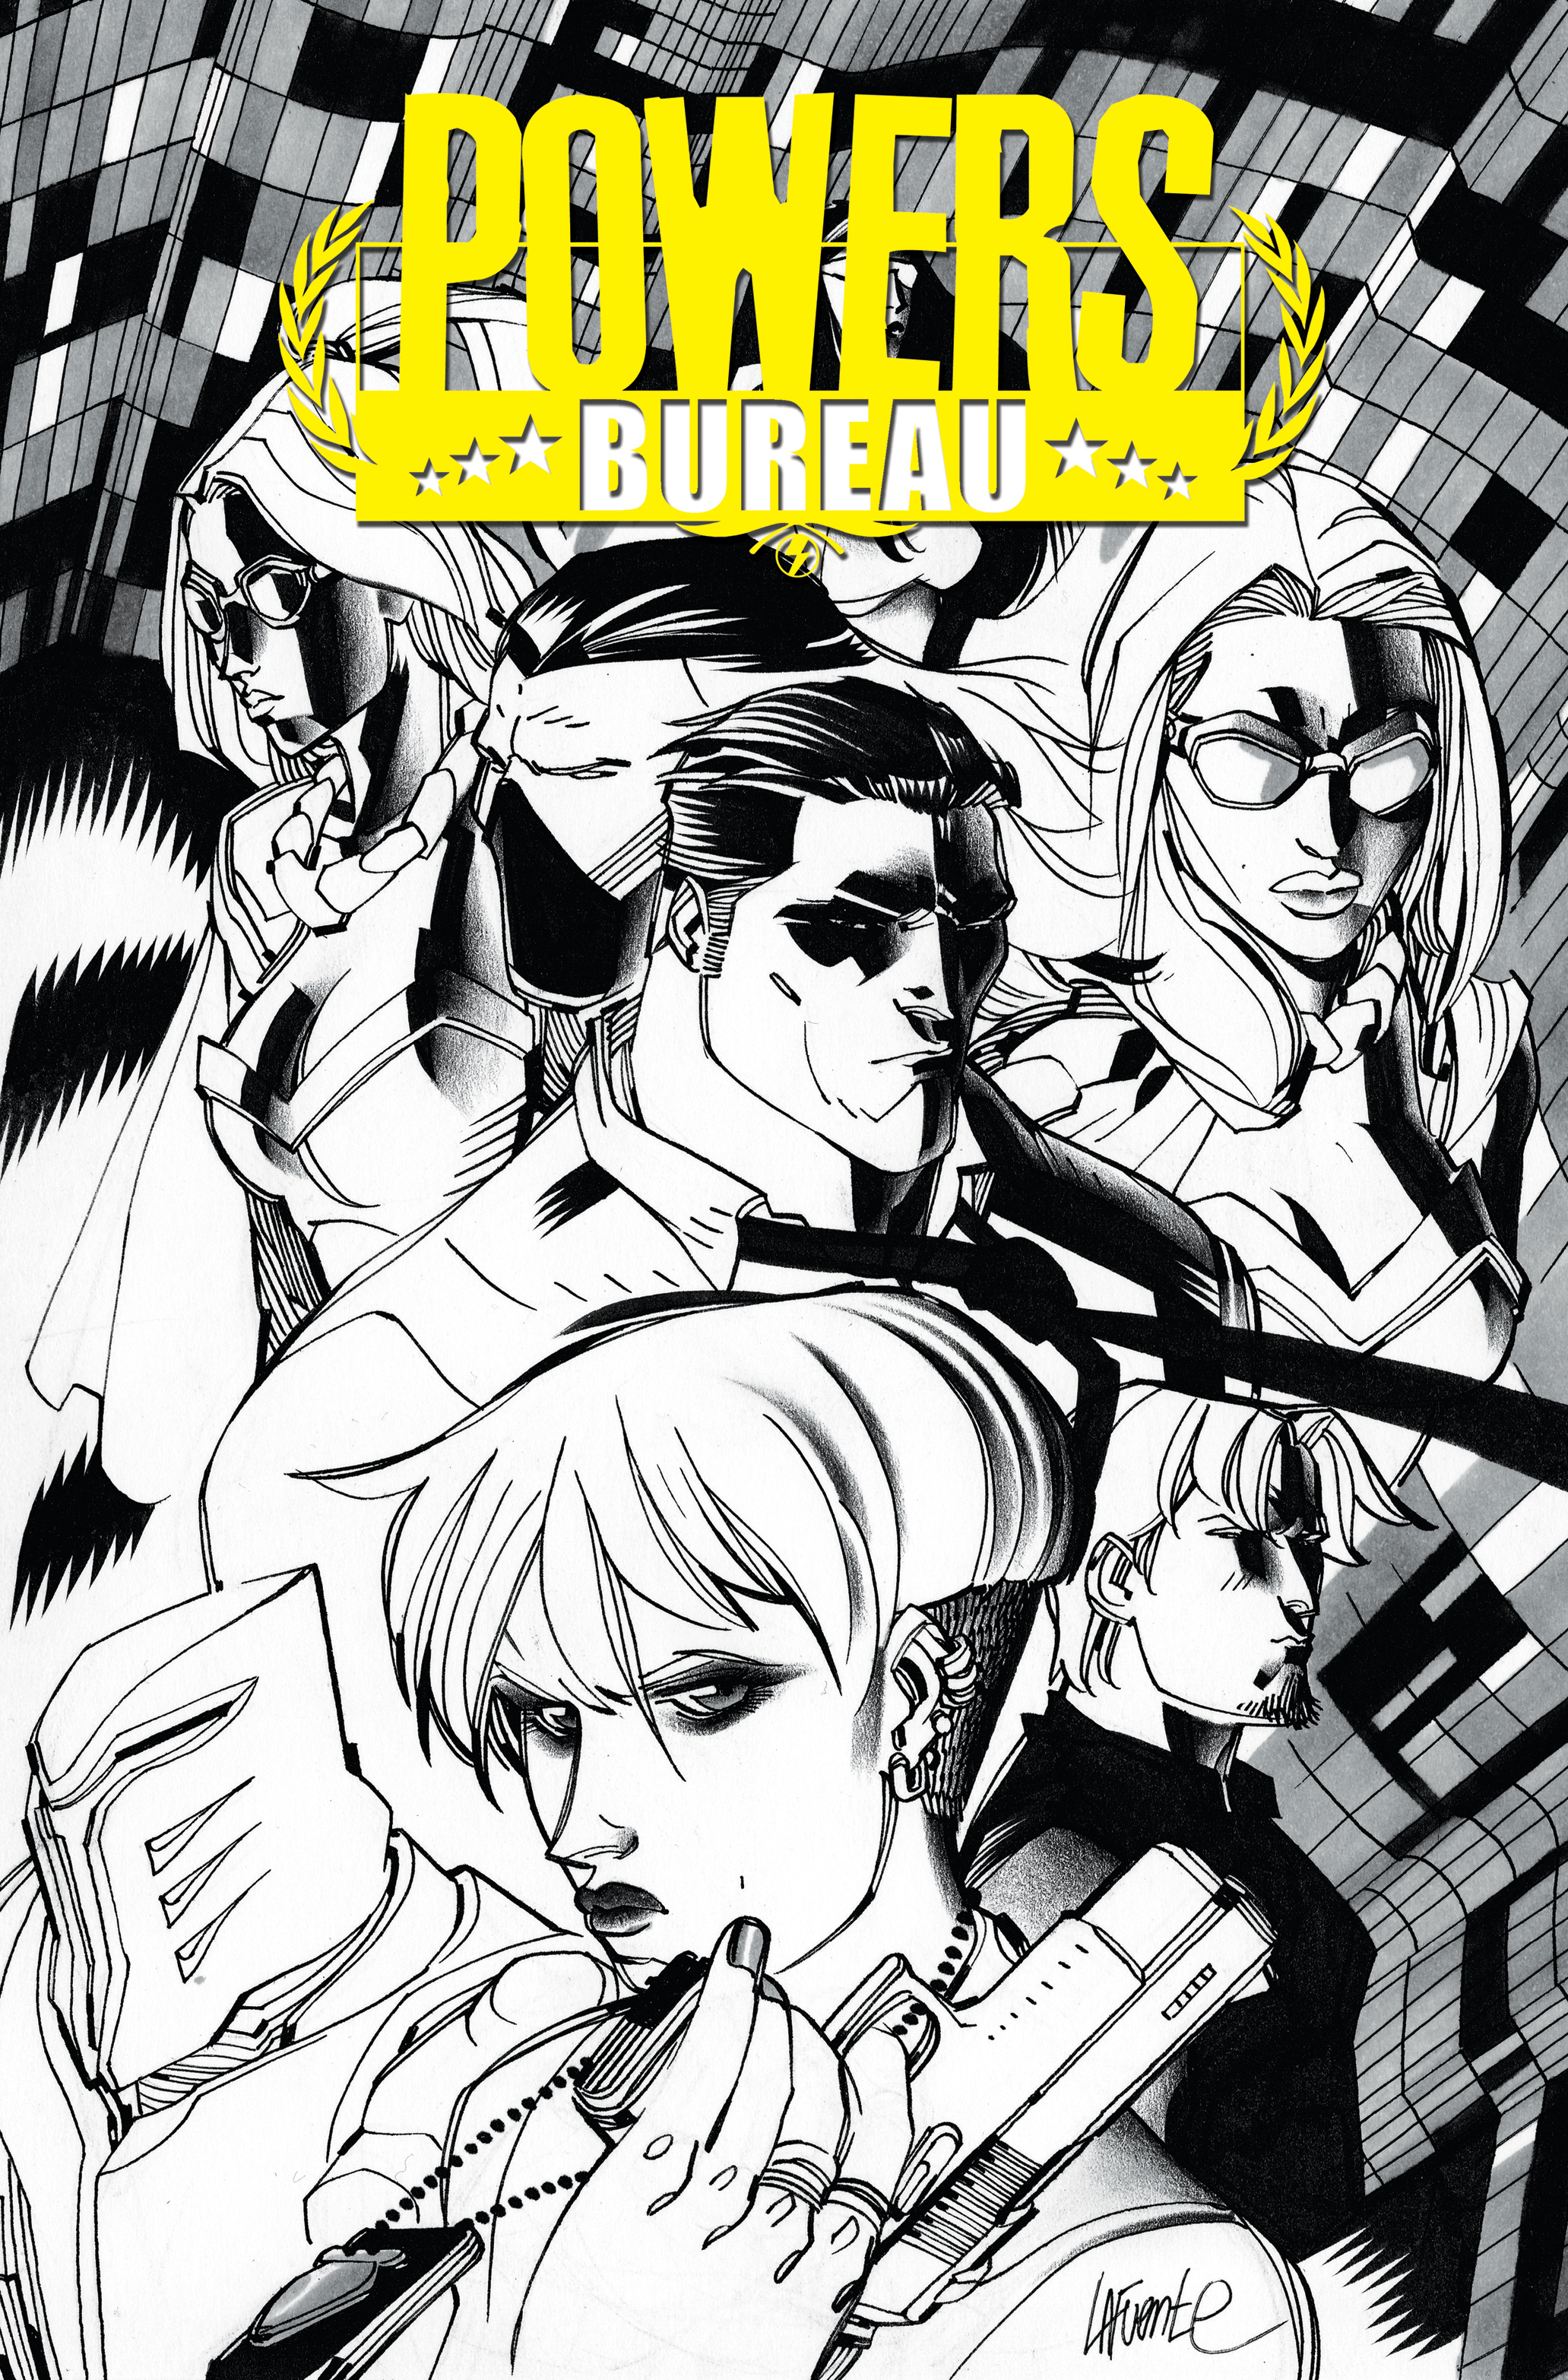 POWERS BUREAU #1 LAFUENTE VAR (MR)